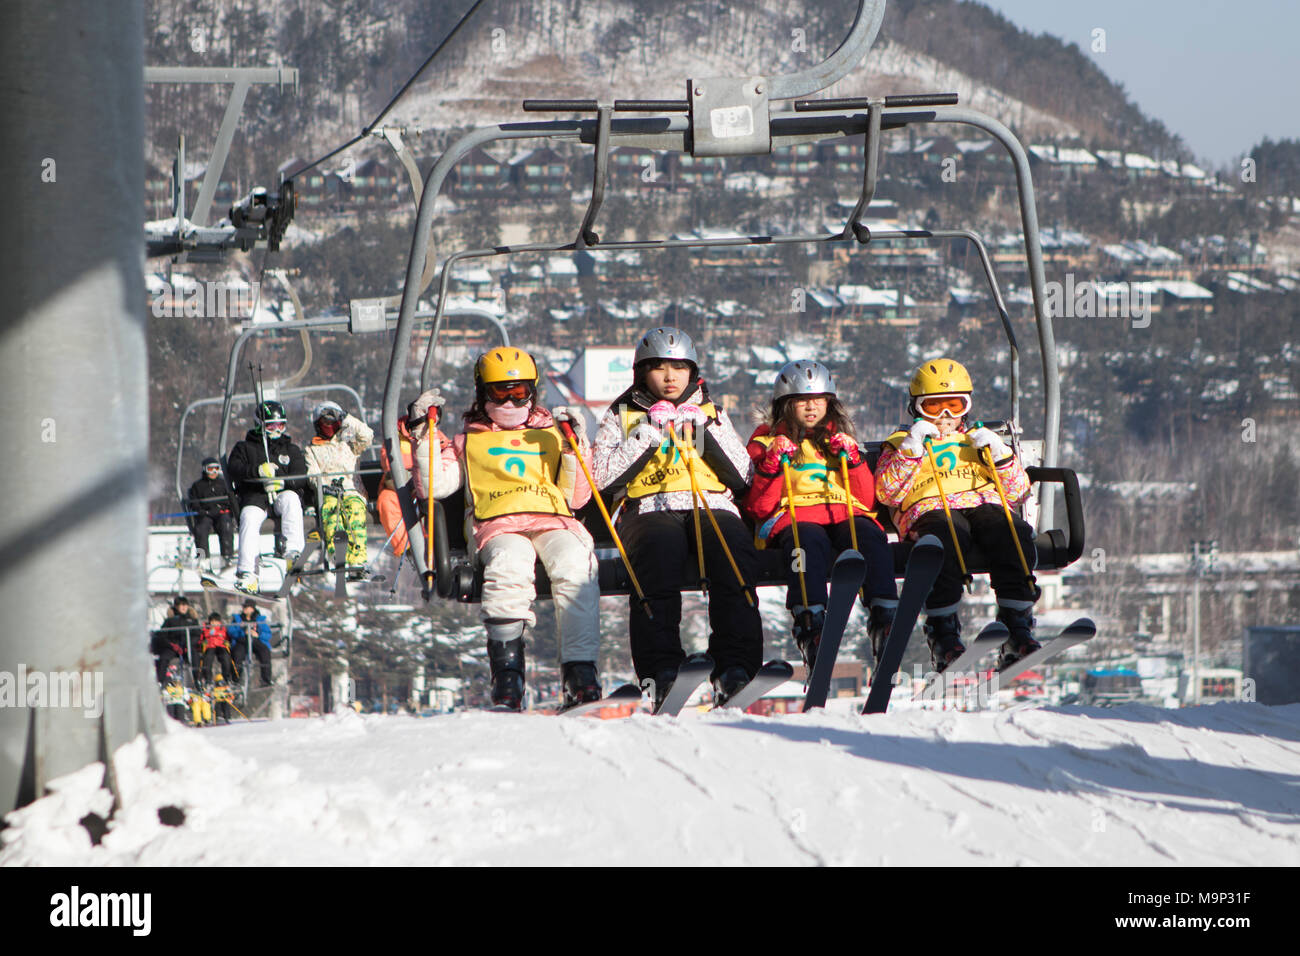 A group of four children is arriving at the chair lift top station of the bunny slope at Yongpyong.  Yongpyong (Dragon Valley) Ski Resort is a ski resort in South Korea, located in Daegwallyeong-myeon, Pyeongchang, Gangwon-do. It is the largest ski and snowboard resort in Korea. Yongpyong will host the technical alpine skiing events for the 2018 Winter Olympics and Paralympics in Pyeongchang. Some scenes of the 2002 Korean Broadcasting System drama Winter Sonata were filmed at the resort. - Stock Image